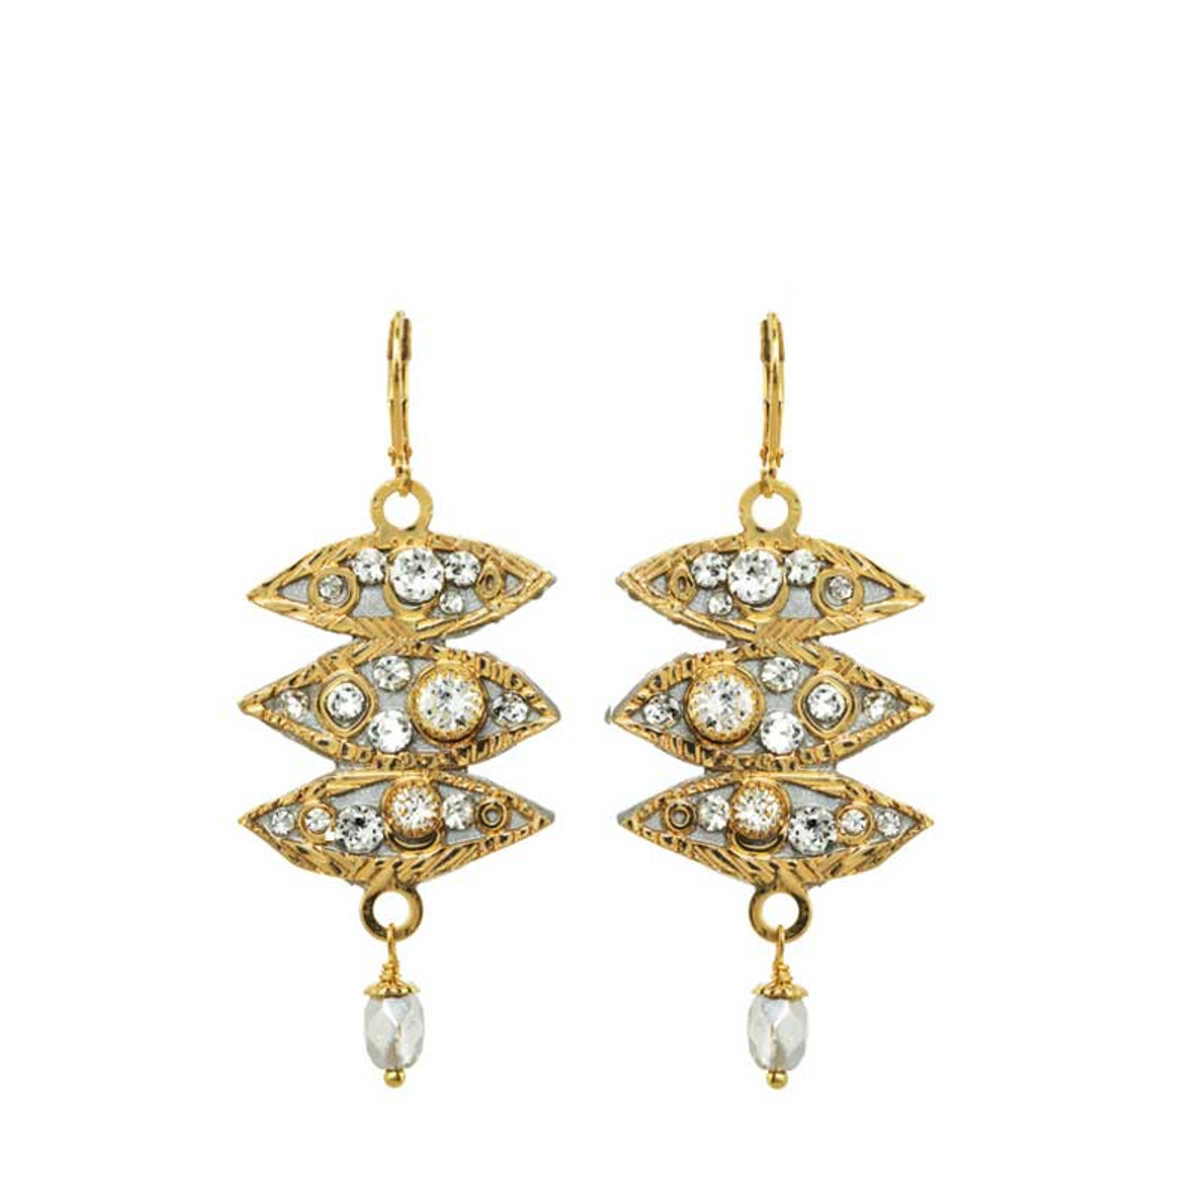 Icicle earrings by Michal Golan Jewelry